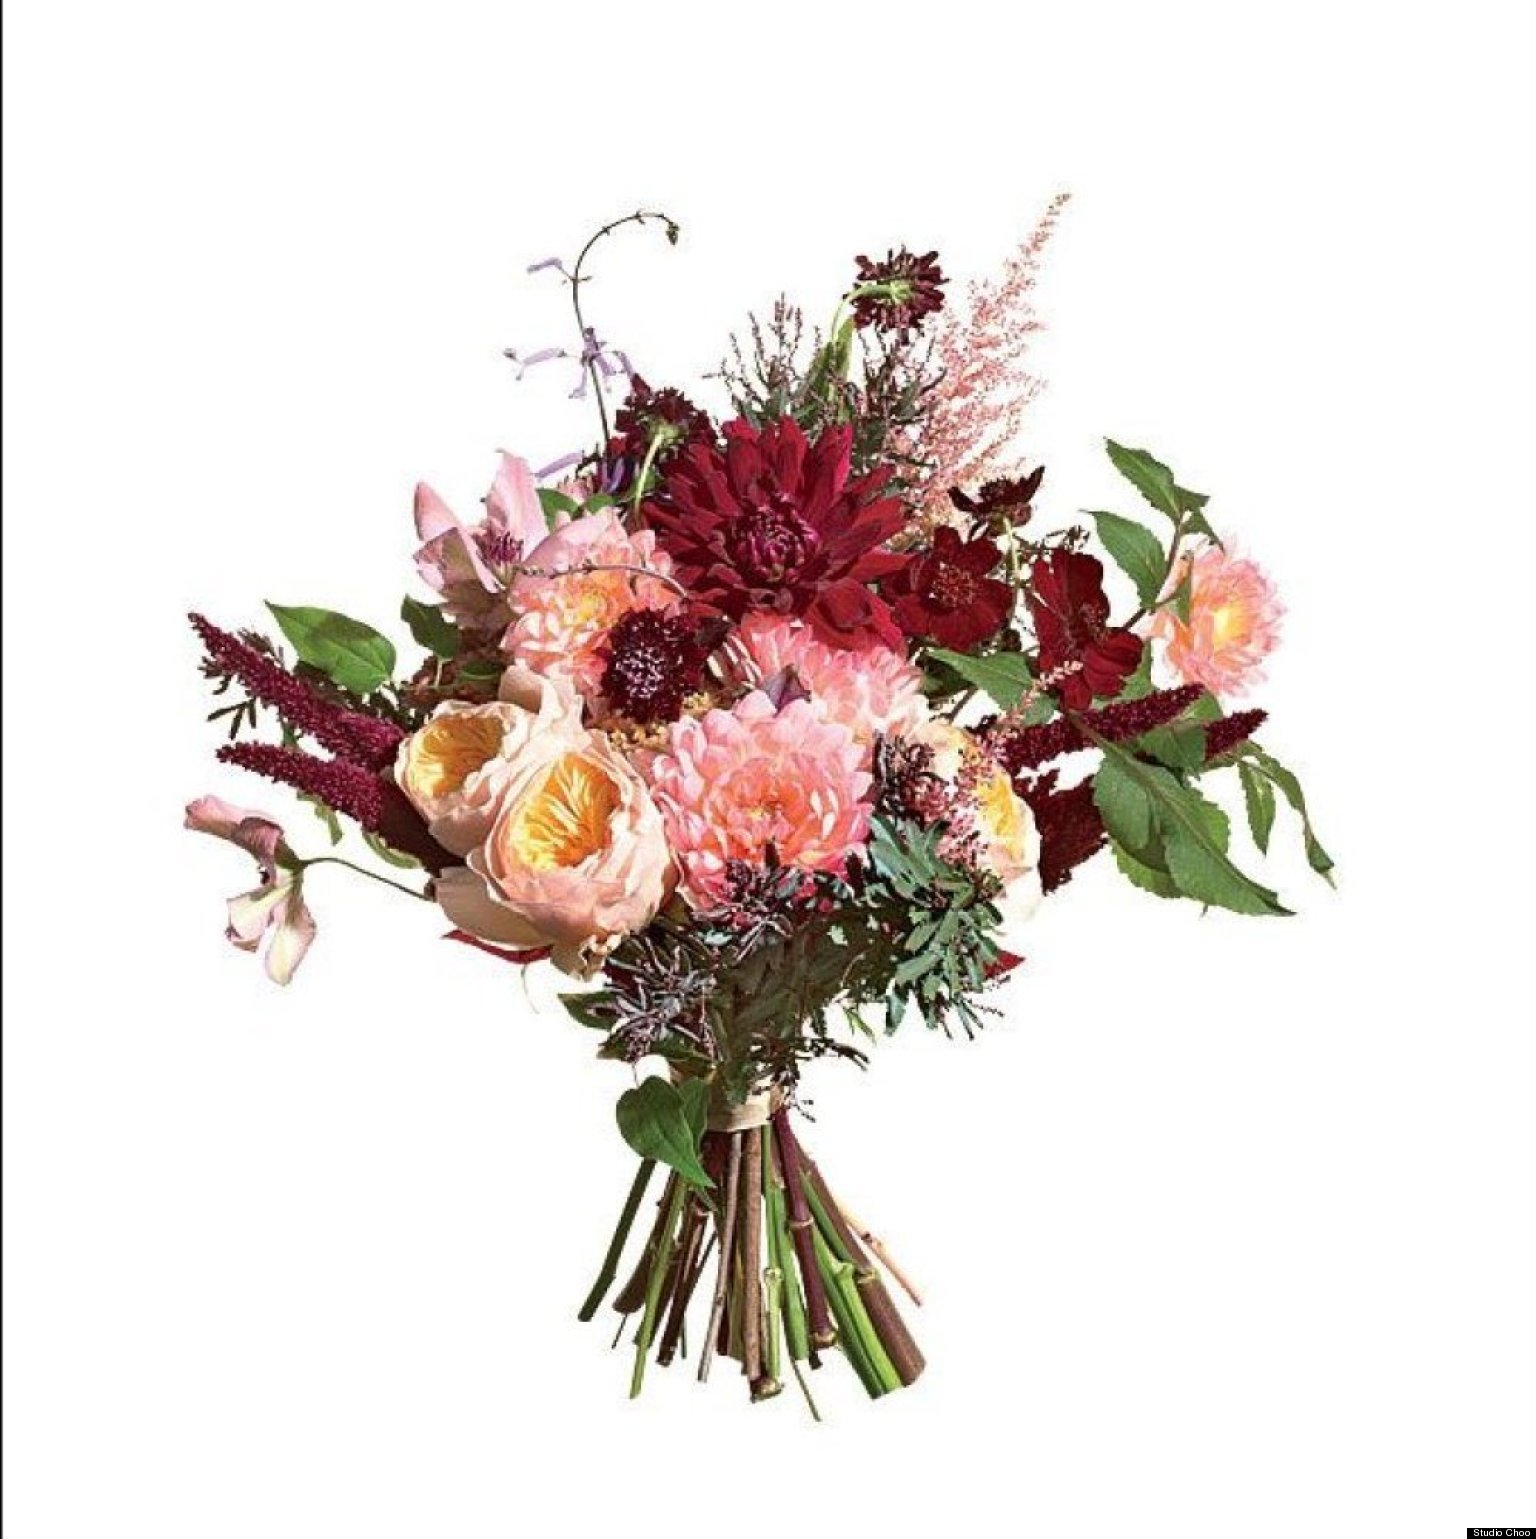 Wedding Bouquet Inspiration By City | HuffPost